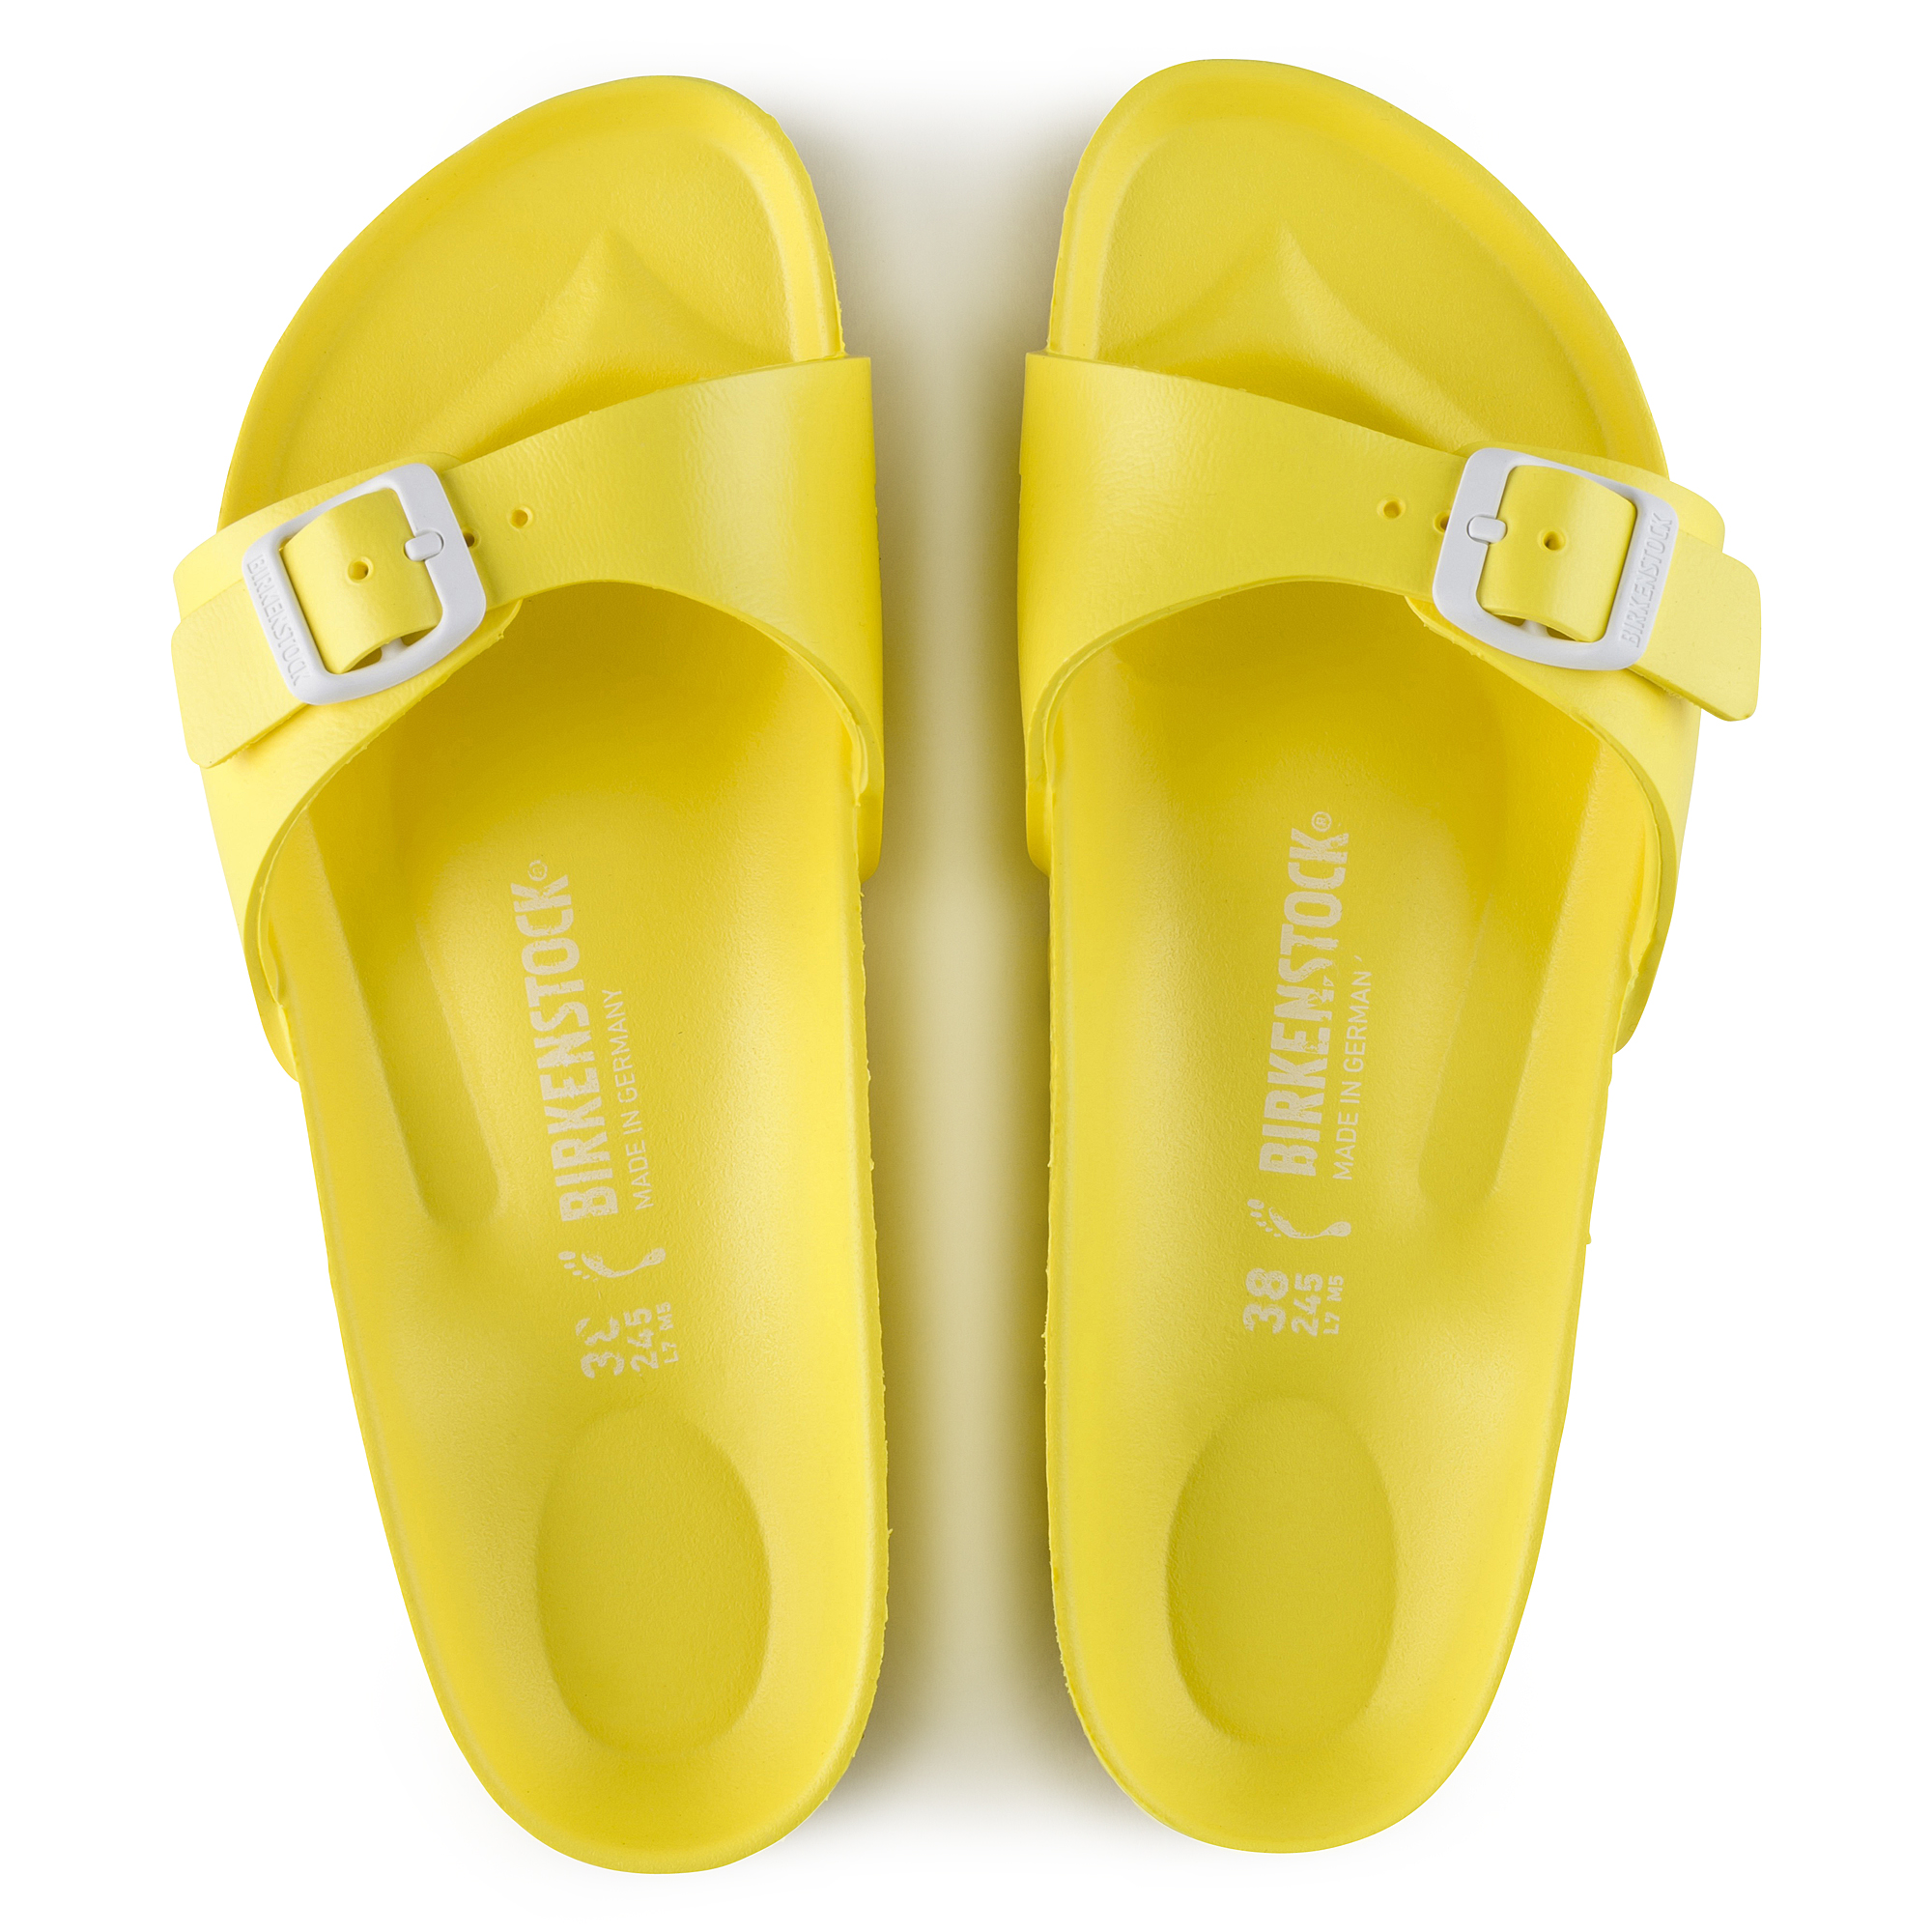 Madrid eva neon yellow shop online at birkenstock for Top us online shopping sites